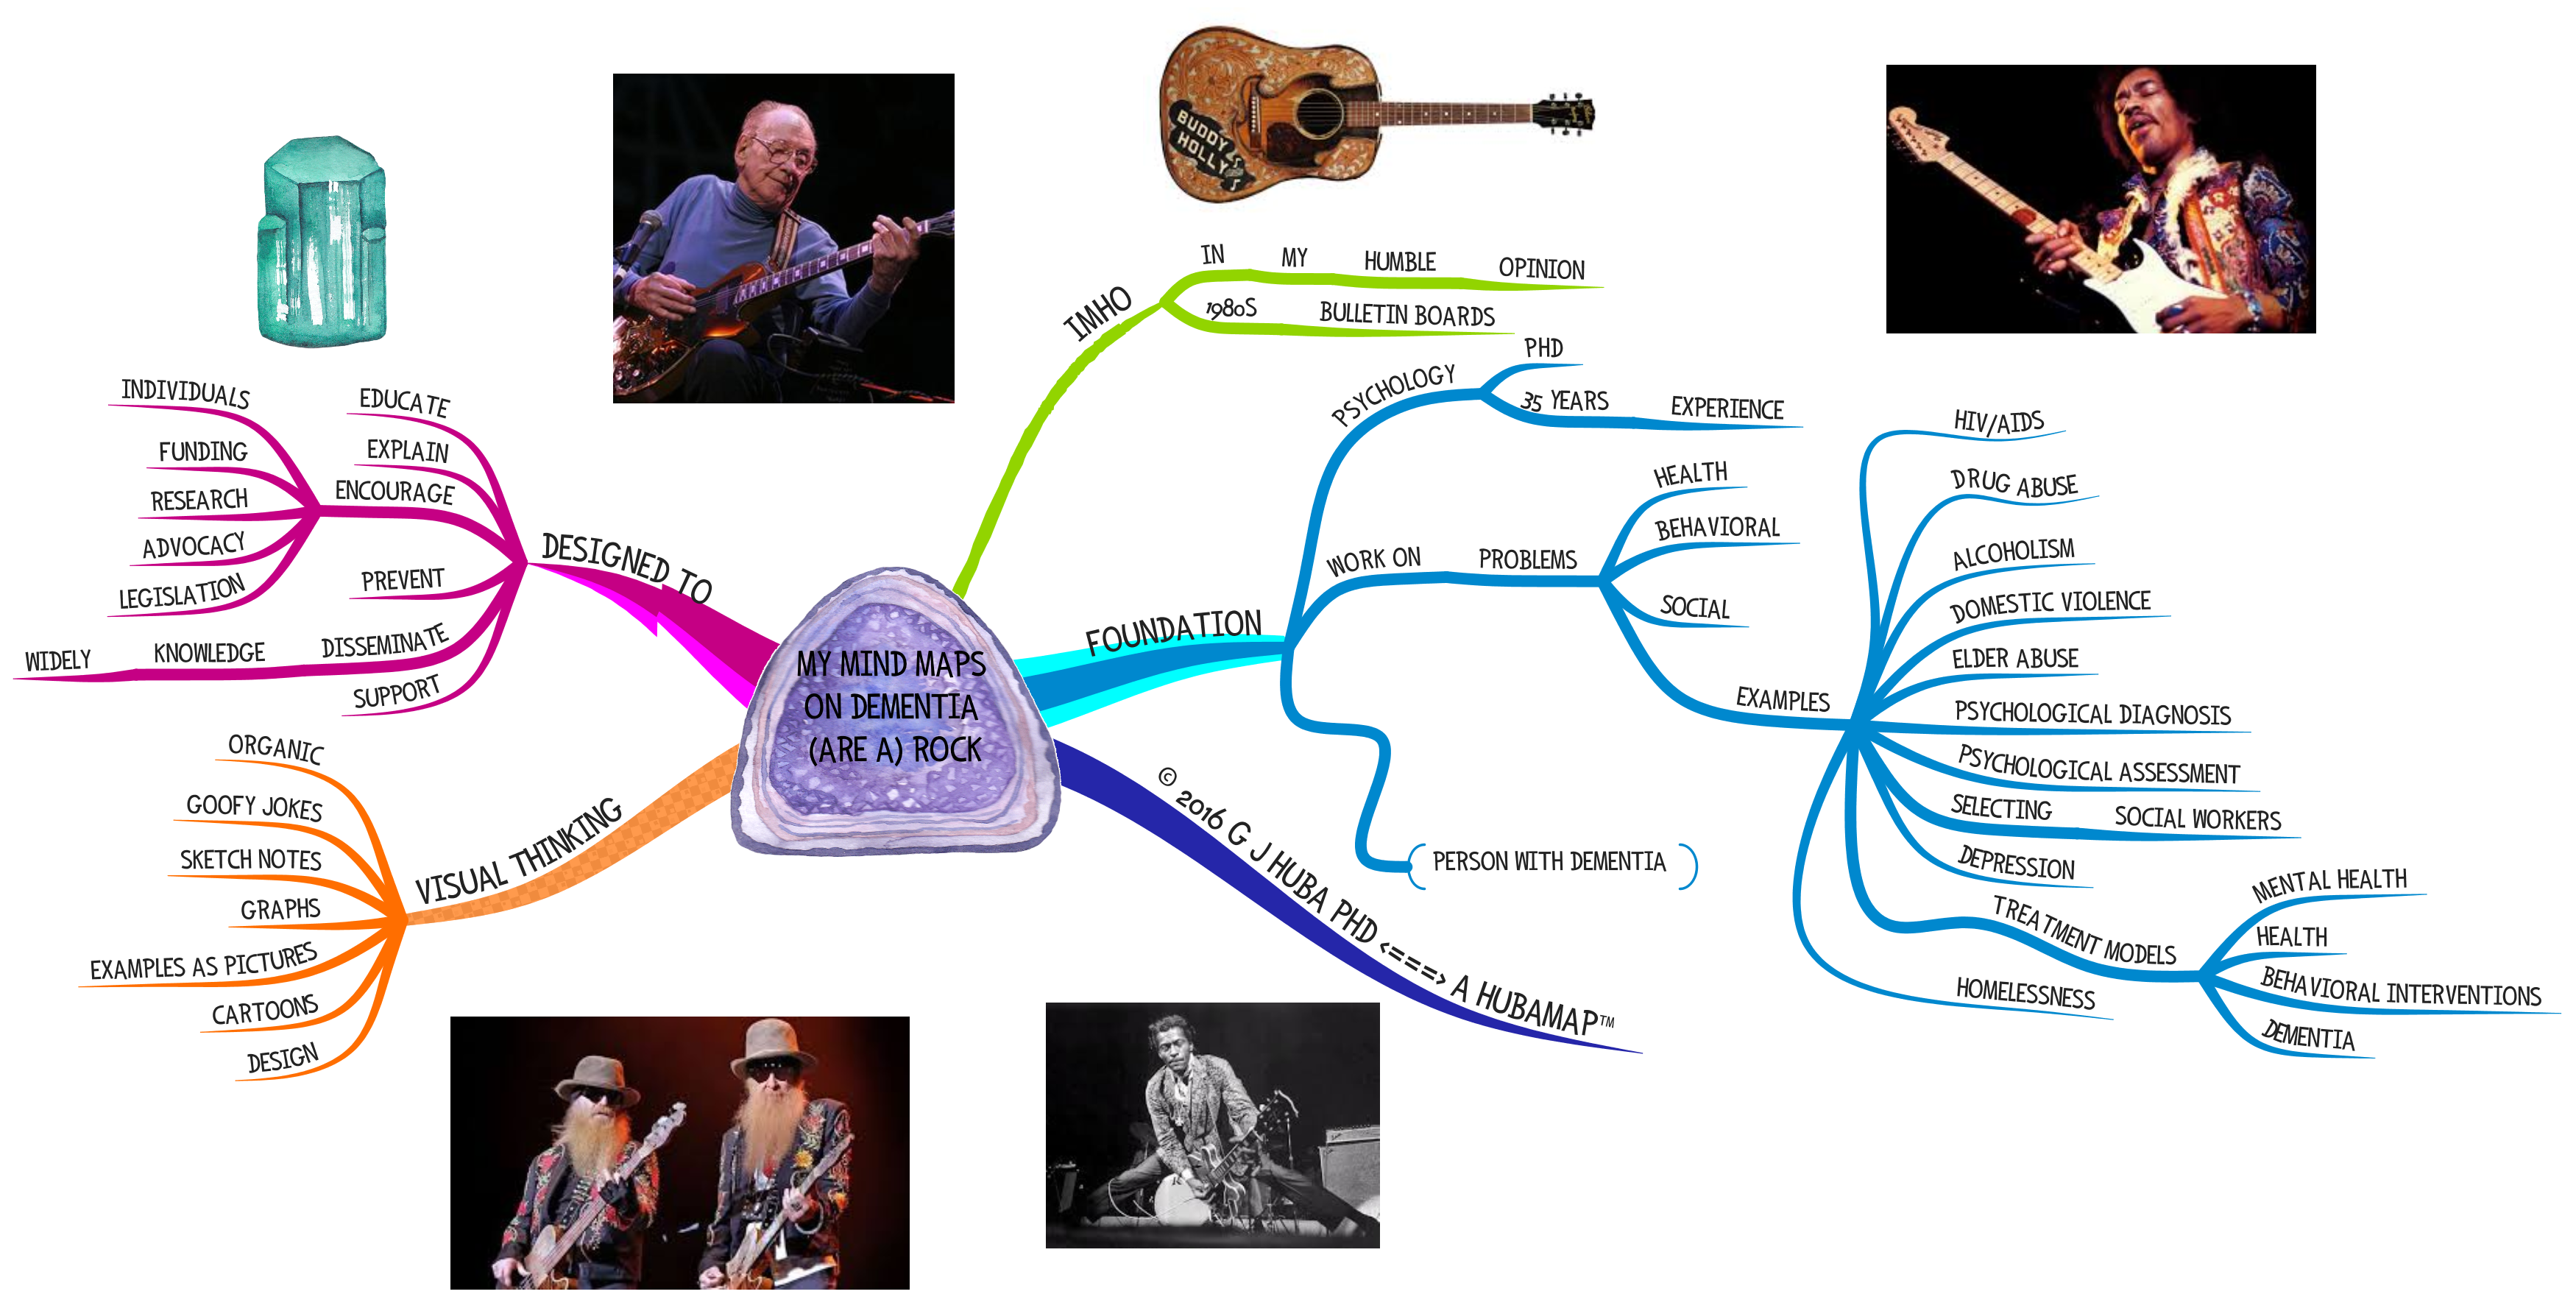 MY MIND MAPS ON DEMENTIA (ARE A) ROCK